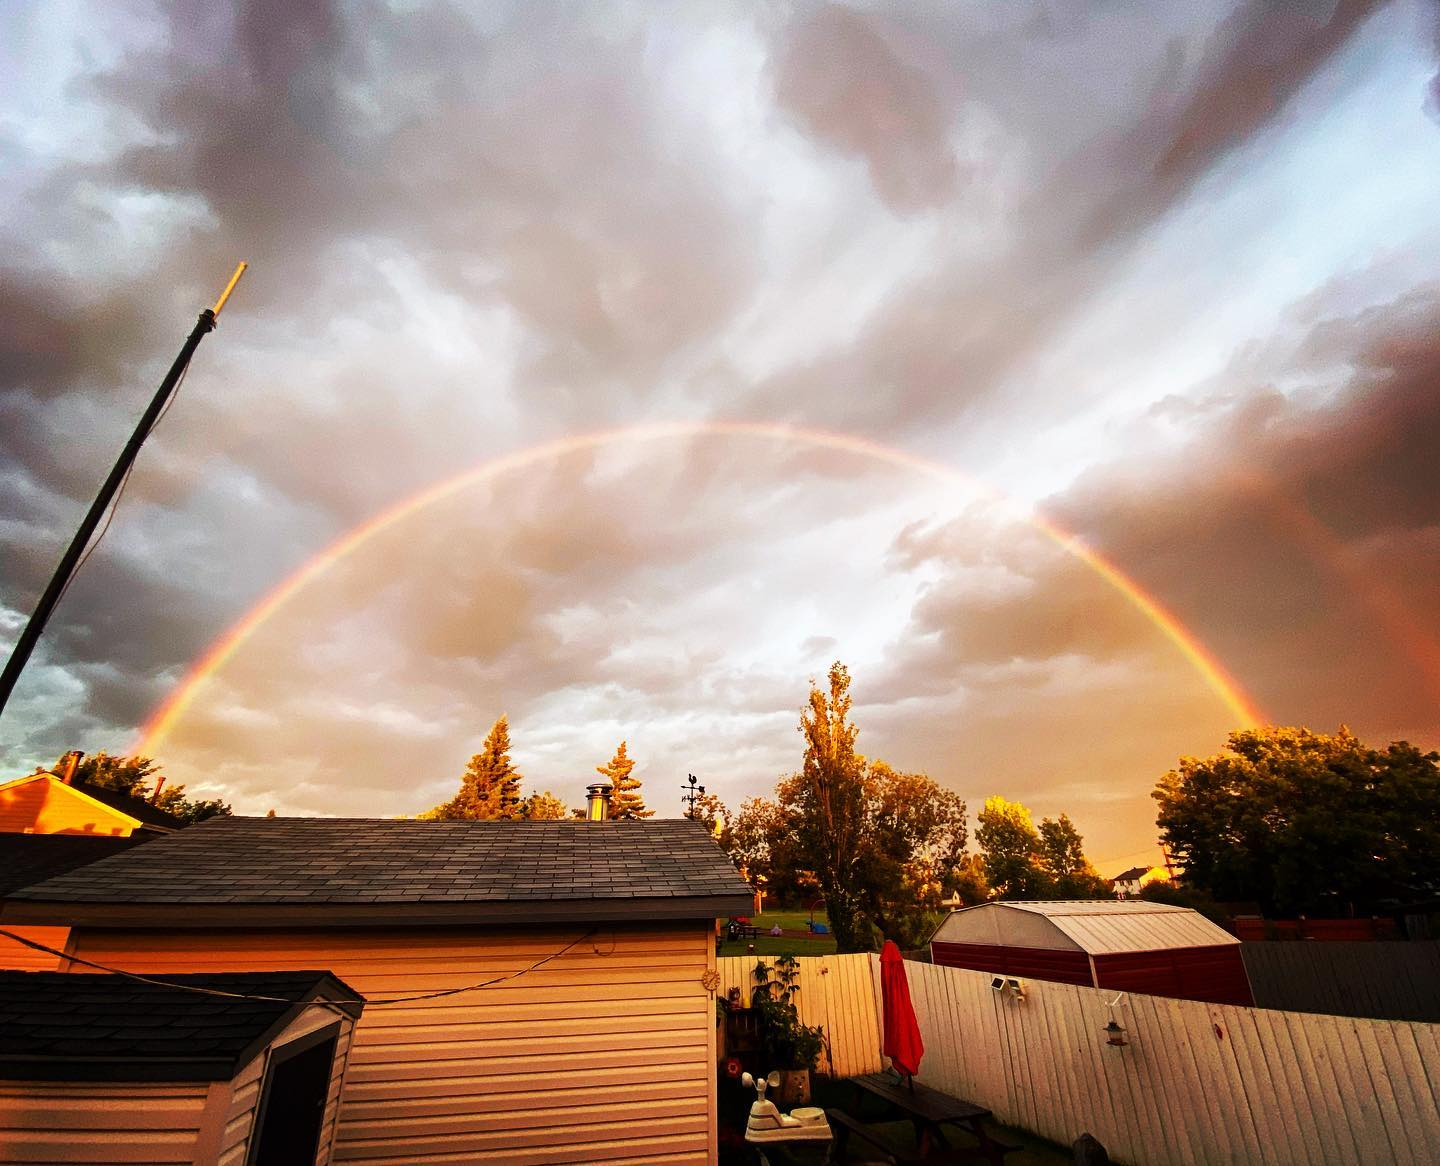 Full double rainbow in my backyard a couple of nights ago.